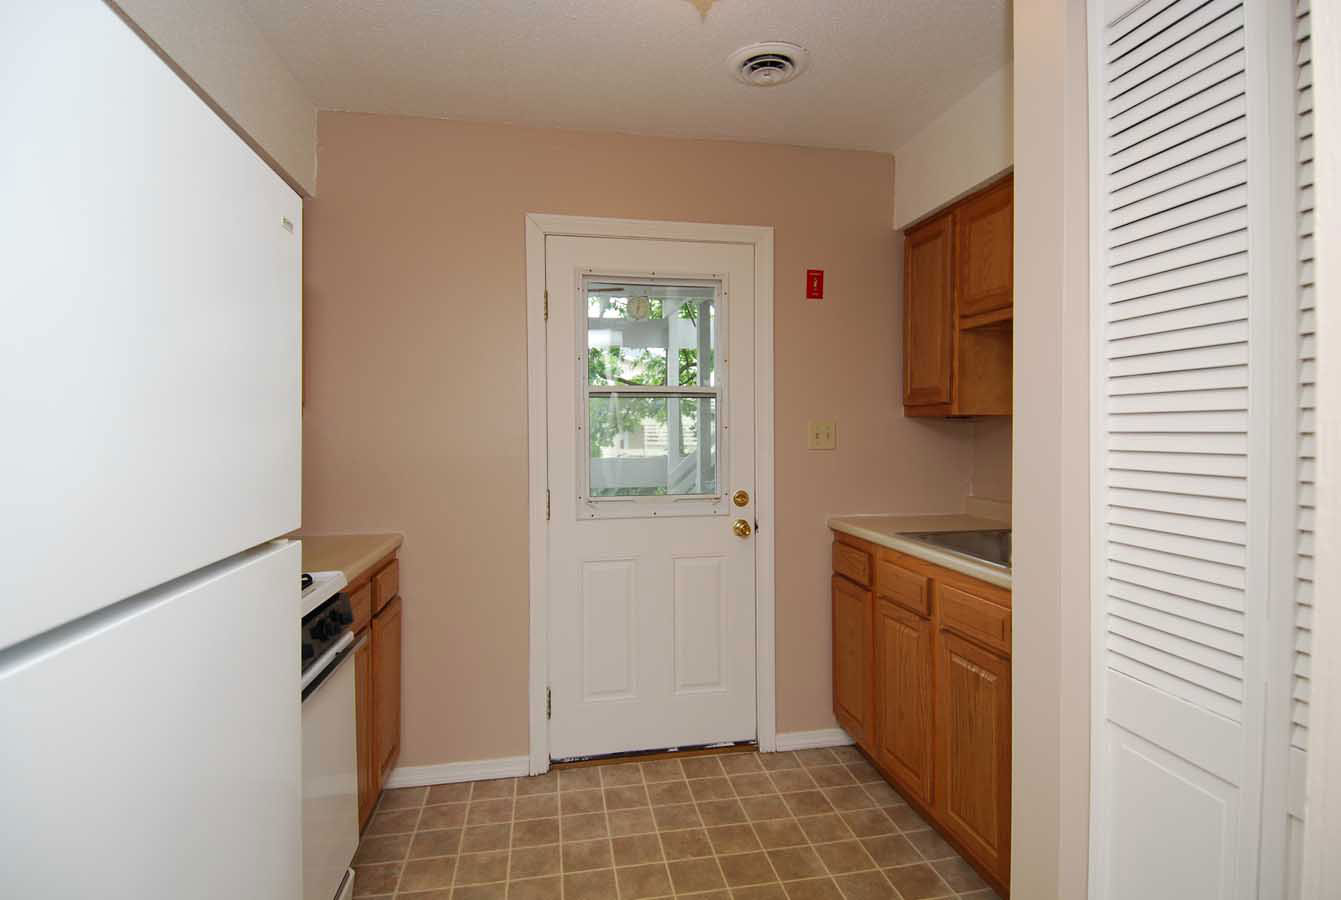 1 Bedroom Apartment in Manchester NH at Wellington Terrace Apartments